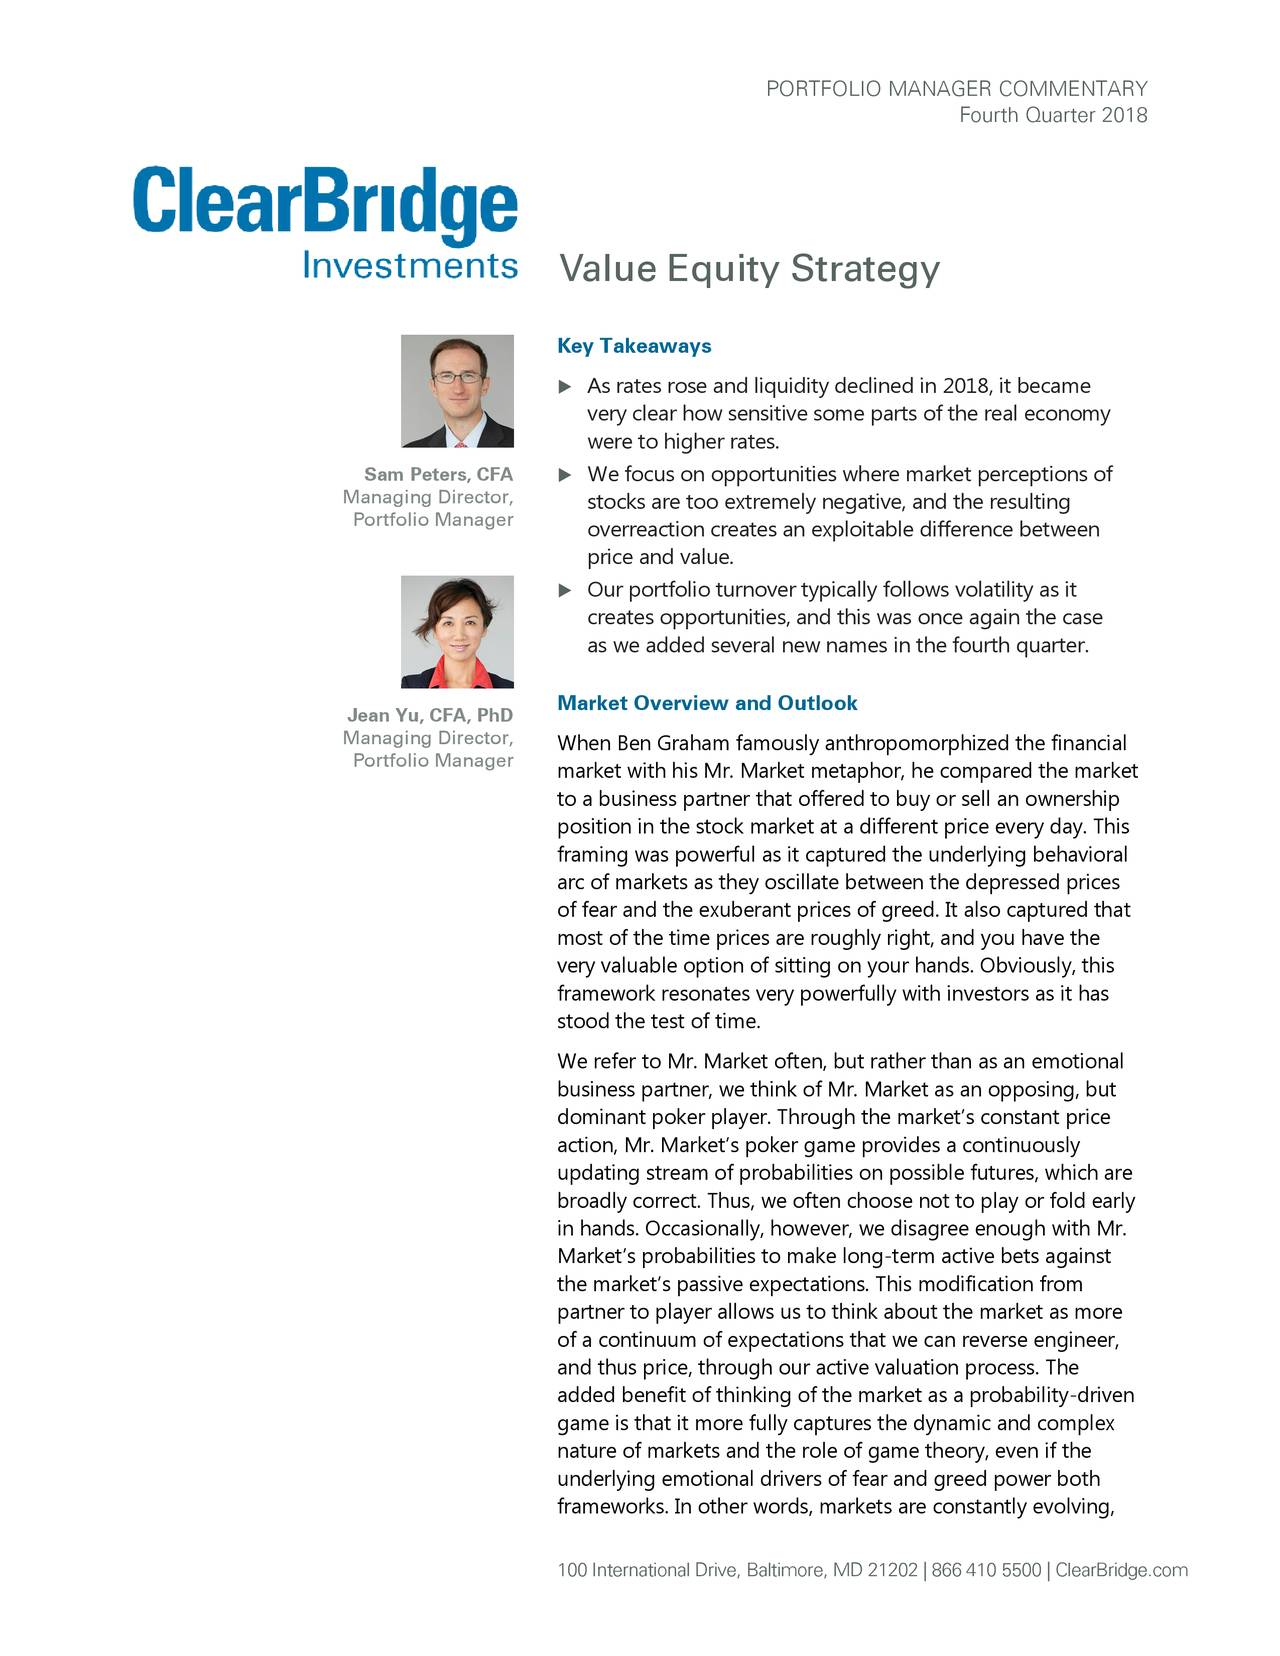 Fourth Quarter 2018 Value Equity Strategy Key Takeaways  As rates rose and liquidity declined in 2018, it became very clear how sensitive some parts of the real economy were to higher rates. Sam Peters, CFA  We focus on opportunities where market perceptions of Managing Director, stocks are too extremely negative, and the resulting Portfolio Manager overreaction creates an exploitable difference between price and value.  Our portfolio turnover typically follows volatility as it creates opportunities, and this was once again the case as we added several new names in the fourth quarter . Jean Yu, CFA, PhD Market Overview and Outlook Managing Director, When Ben Graham famously anthropomorphized the financial Portfolio Manager market with his Mr. Market metaphor, he compared the market to a business partner that offered to buy or sell an ownership position in the stock market at a different price every day. This framing was powerful as it captured the underlying behavioral arc of markets as they oscillate between the depressed prices of fear and the exuberant prices of greed. It also captured that most of the time prices are roughly right, and you have the very valuable option of sitting on your hands. Obviously, this framework resonates very powerfully with investors as it has stood the test of time. We refer to Mr. Market often, but rather than as an emotional business partner, we think of Mr. Market as an opposing, but dominant poker player. Through the market's constant price action, Mr. Market's poker game provides a continuously updating stream of probabilities on possible futures, which are broadly correct. Thus, we often choose not to play or fold early in hands. Occasionally, however, we disagree enough with Mr. Market's probabilities to make long-term active bets against the market's passive expectations. This modification from partner to player allows us to think about the market as more of a continuum of expectations that we can reverse engineer, and thus price, through our active valuation process. The added benefit of thinking of the market as a probability-driven game is that it more fully captures the dynamic and complex nature of markets and the role of game theory, even if the underlying emotional drivers of fear and greed power both frameworks. In other words, markets are constantly evolving, 100 International Drive, Baltimore, MD 21202 | 866 410 5500 | ClearBridge.com